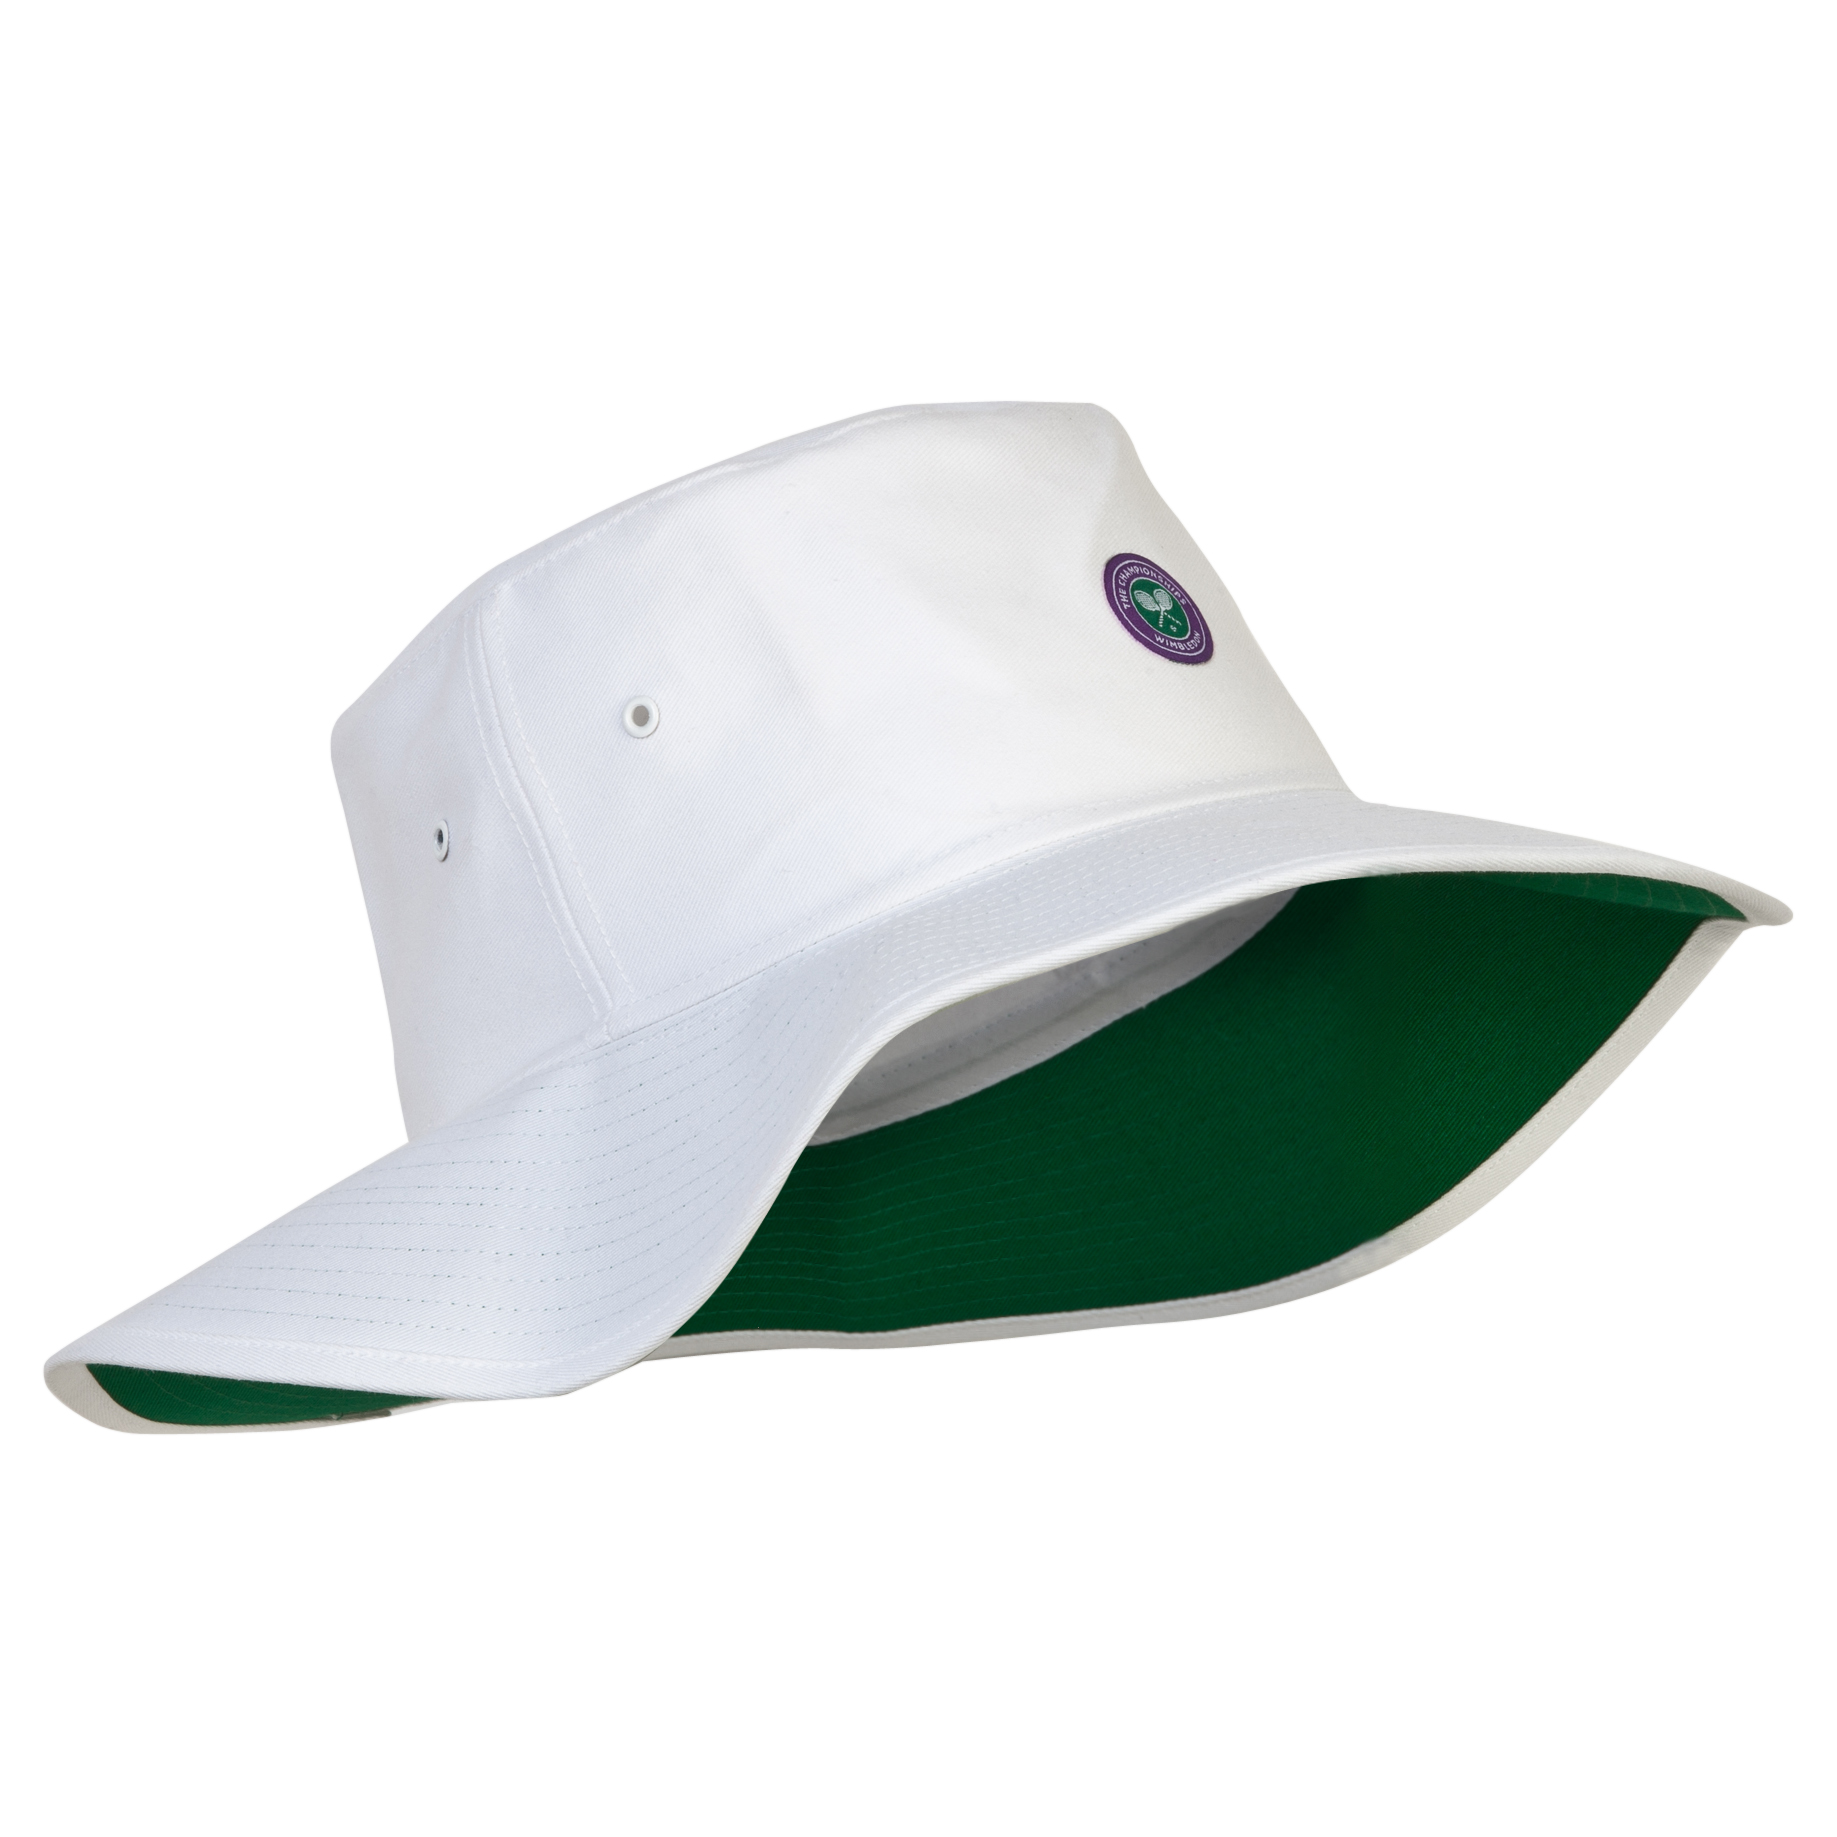 Wimbledon Wide Brim Sun Hat - White